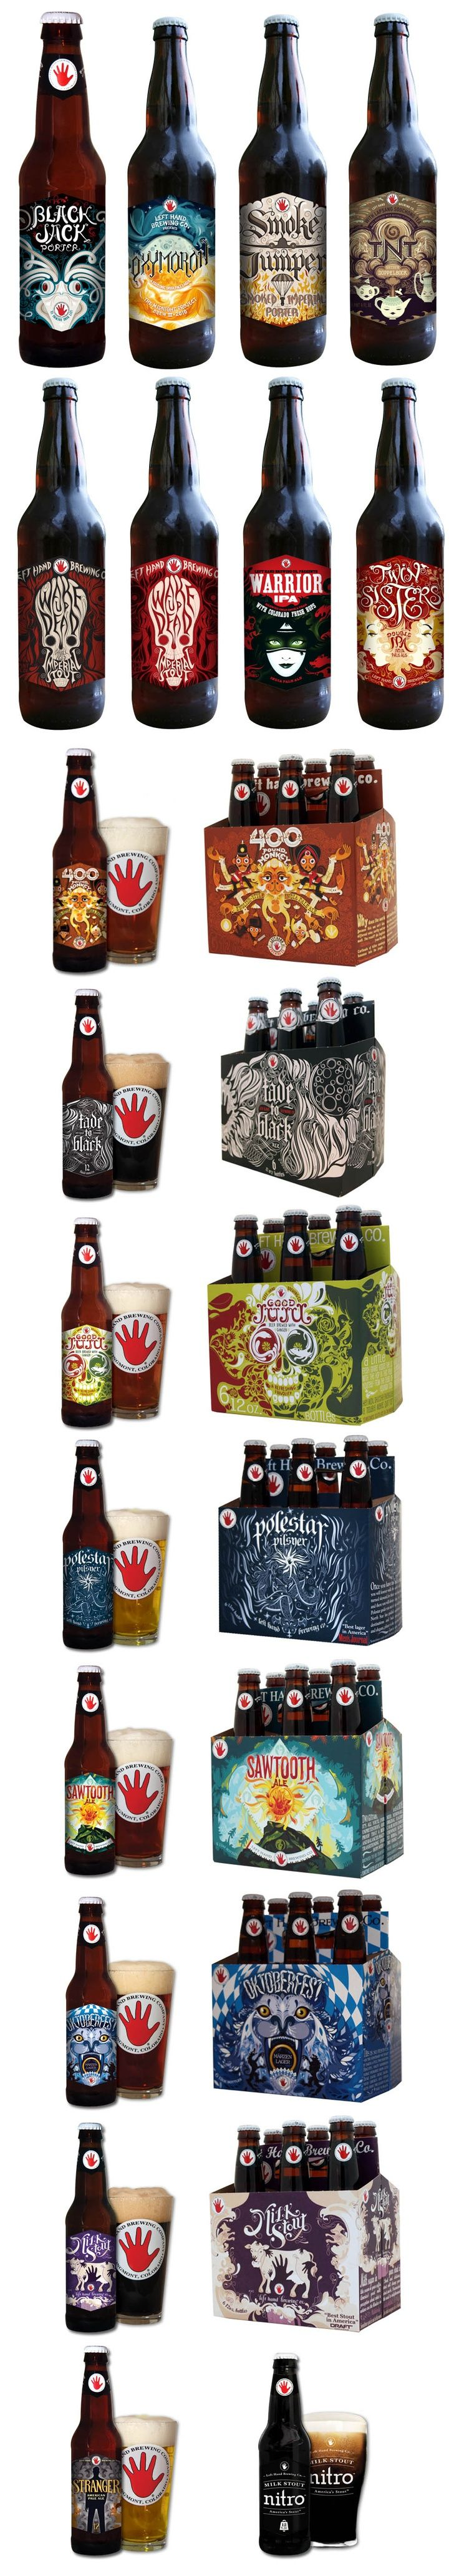 Left Hand Brewing Company's wonderful labels and packaging.